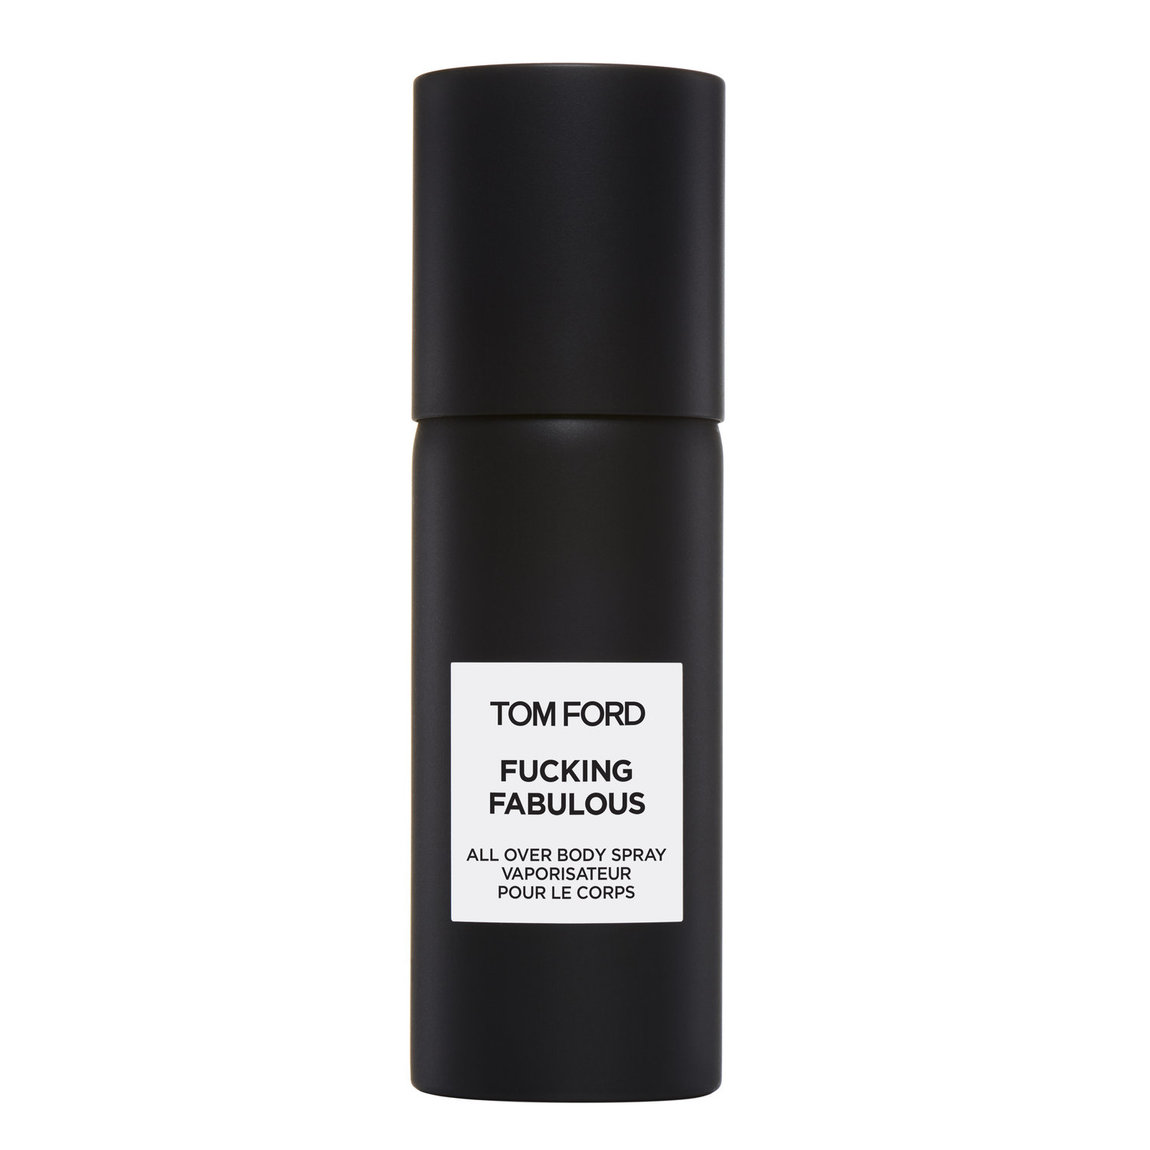 TOM FORD Fucking Fabulous All Over Body Spray product smear.